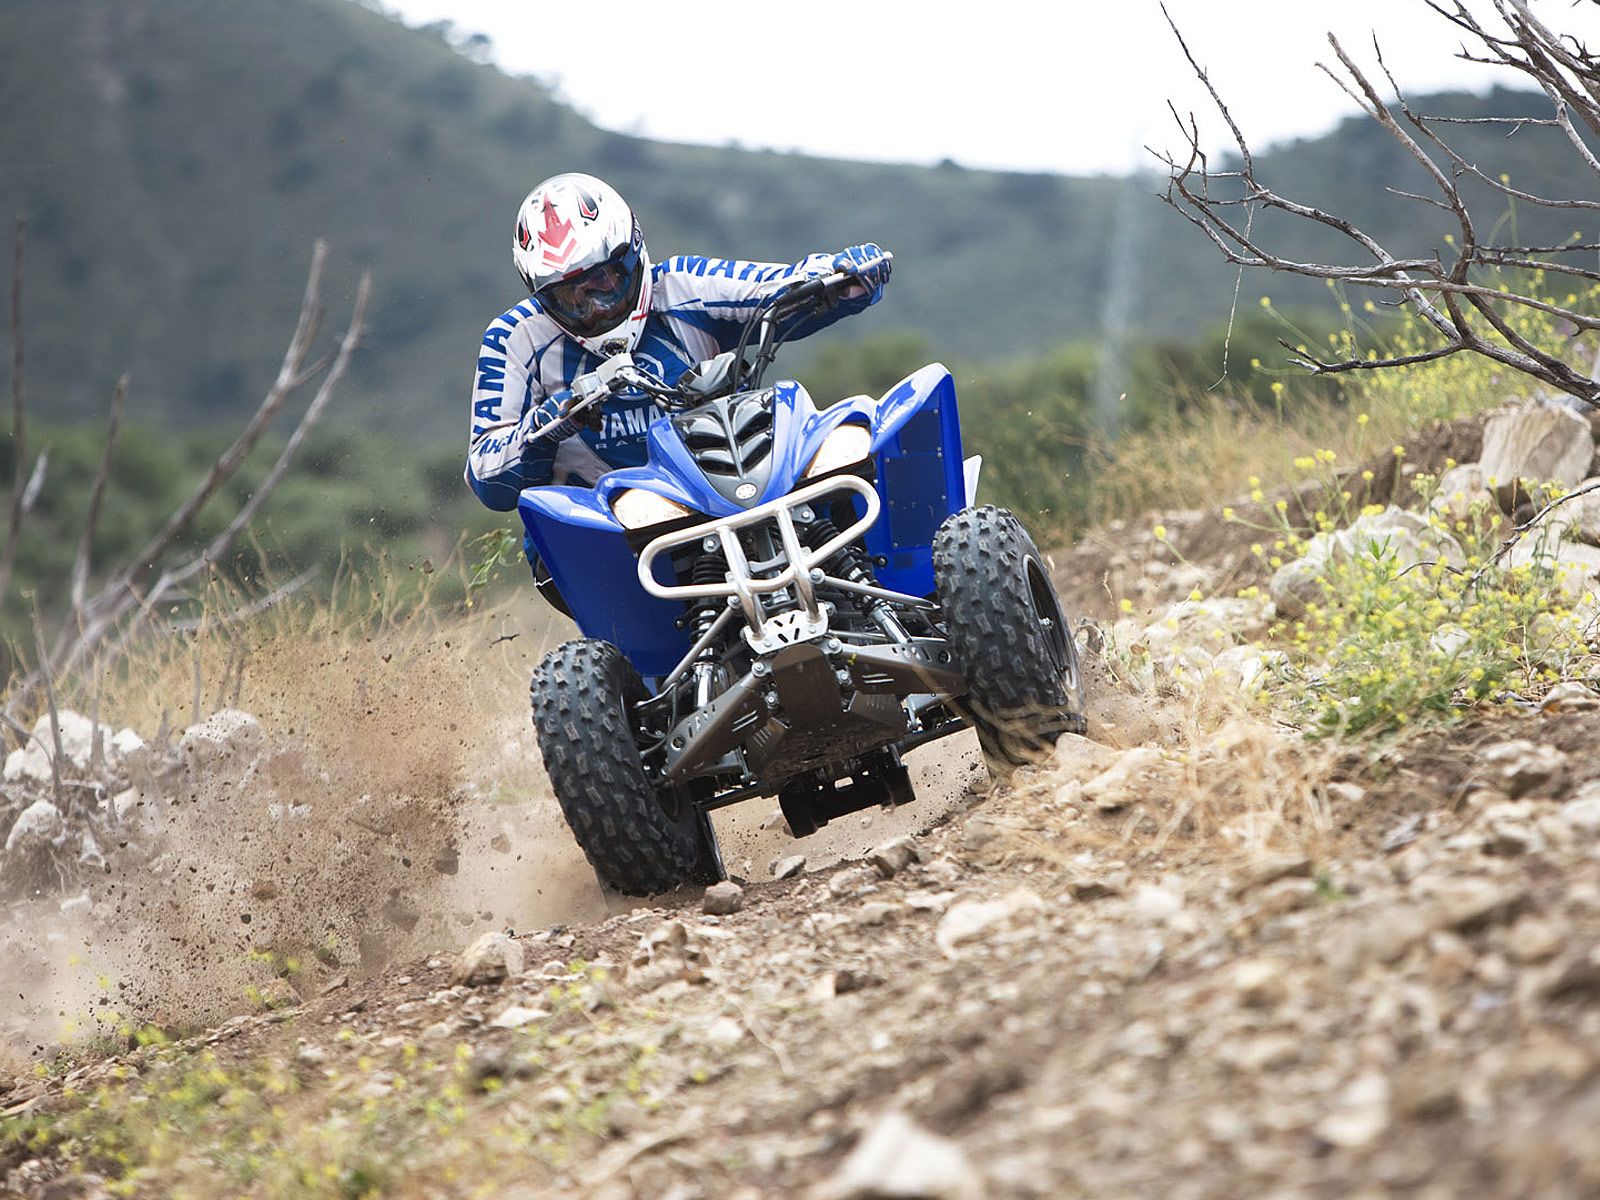 2009 YAMAHA Raptor 350. Click Thumbnail to download (size 1600 x 1200  pixels). • Based ...